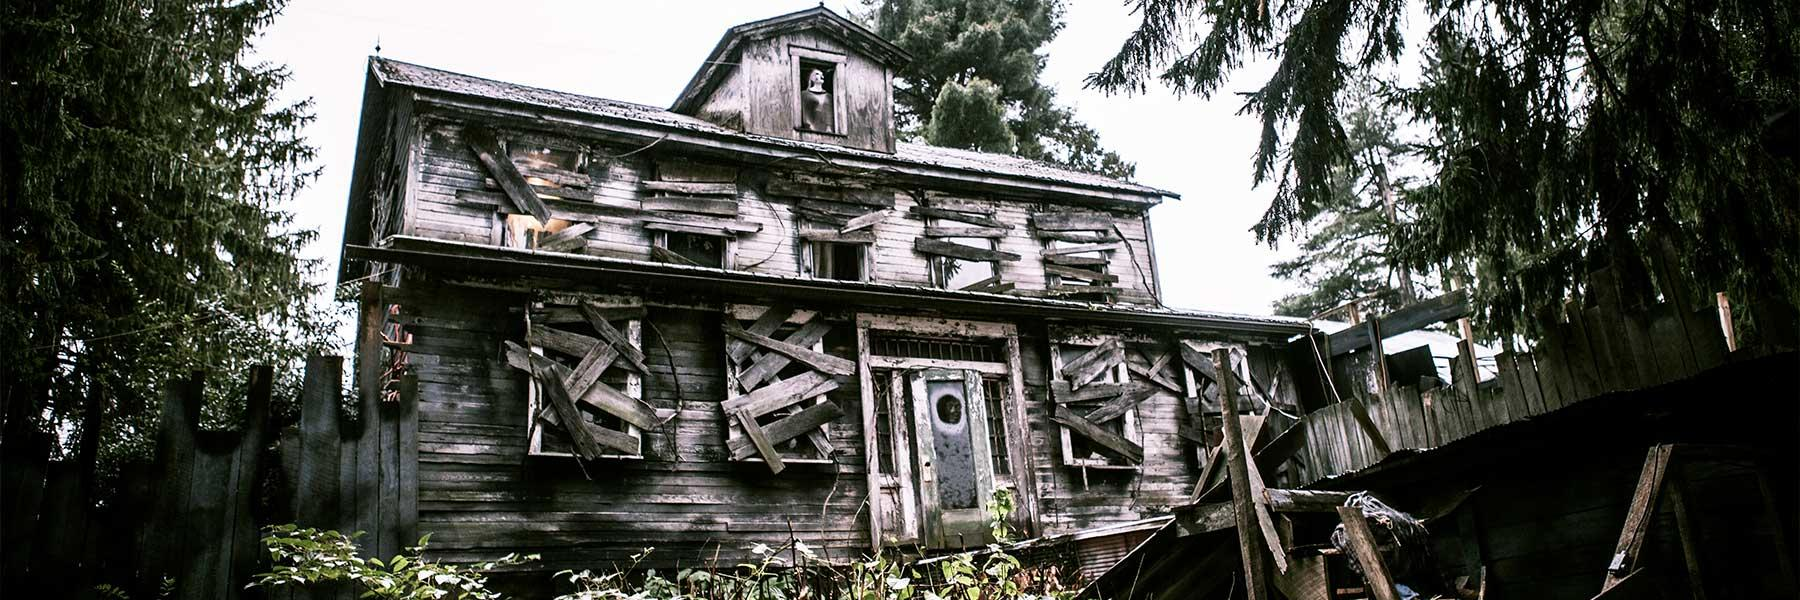 Laurel Highlands Haunted Houses | Haunted Attractions